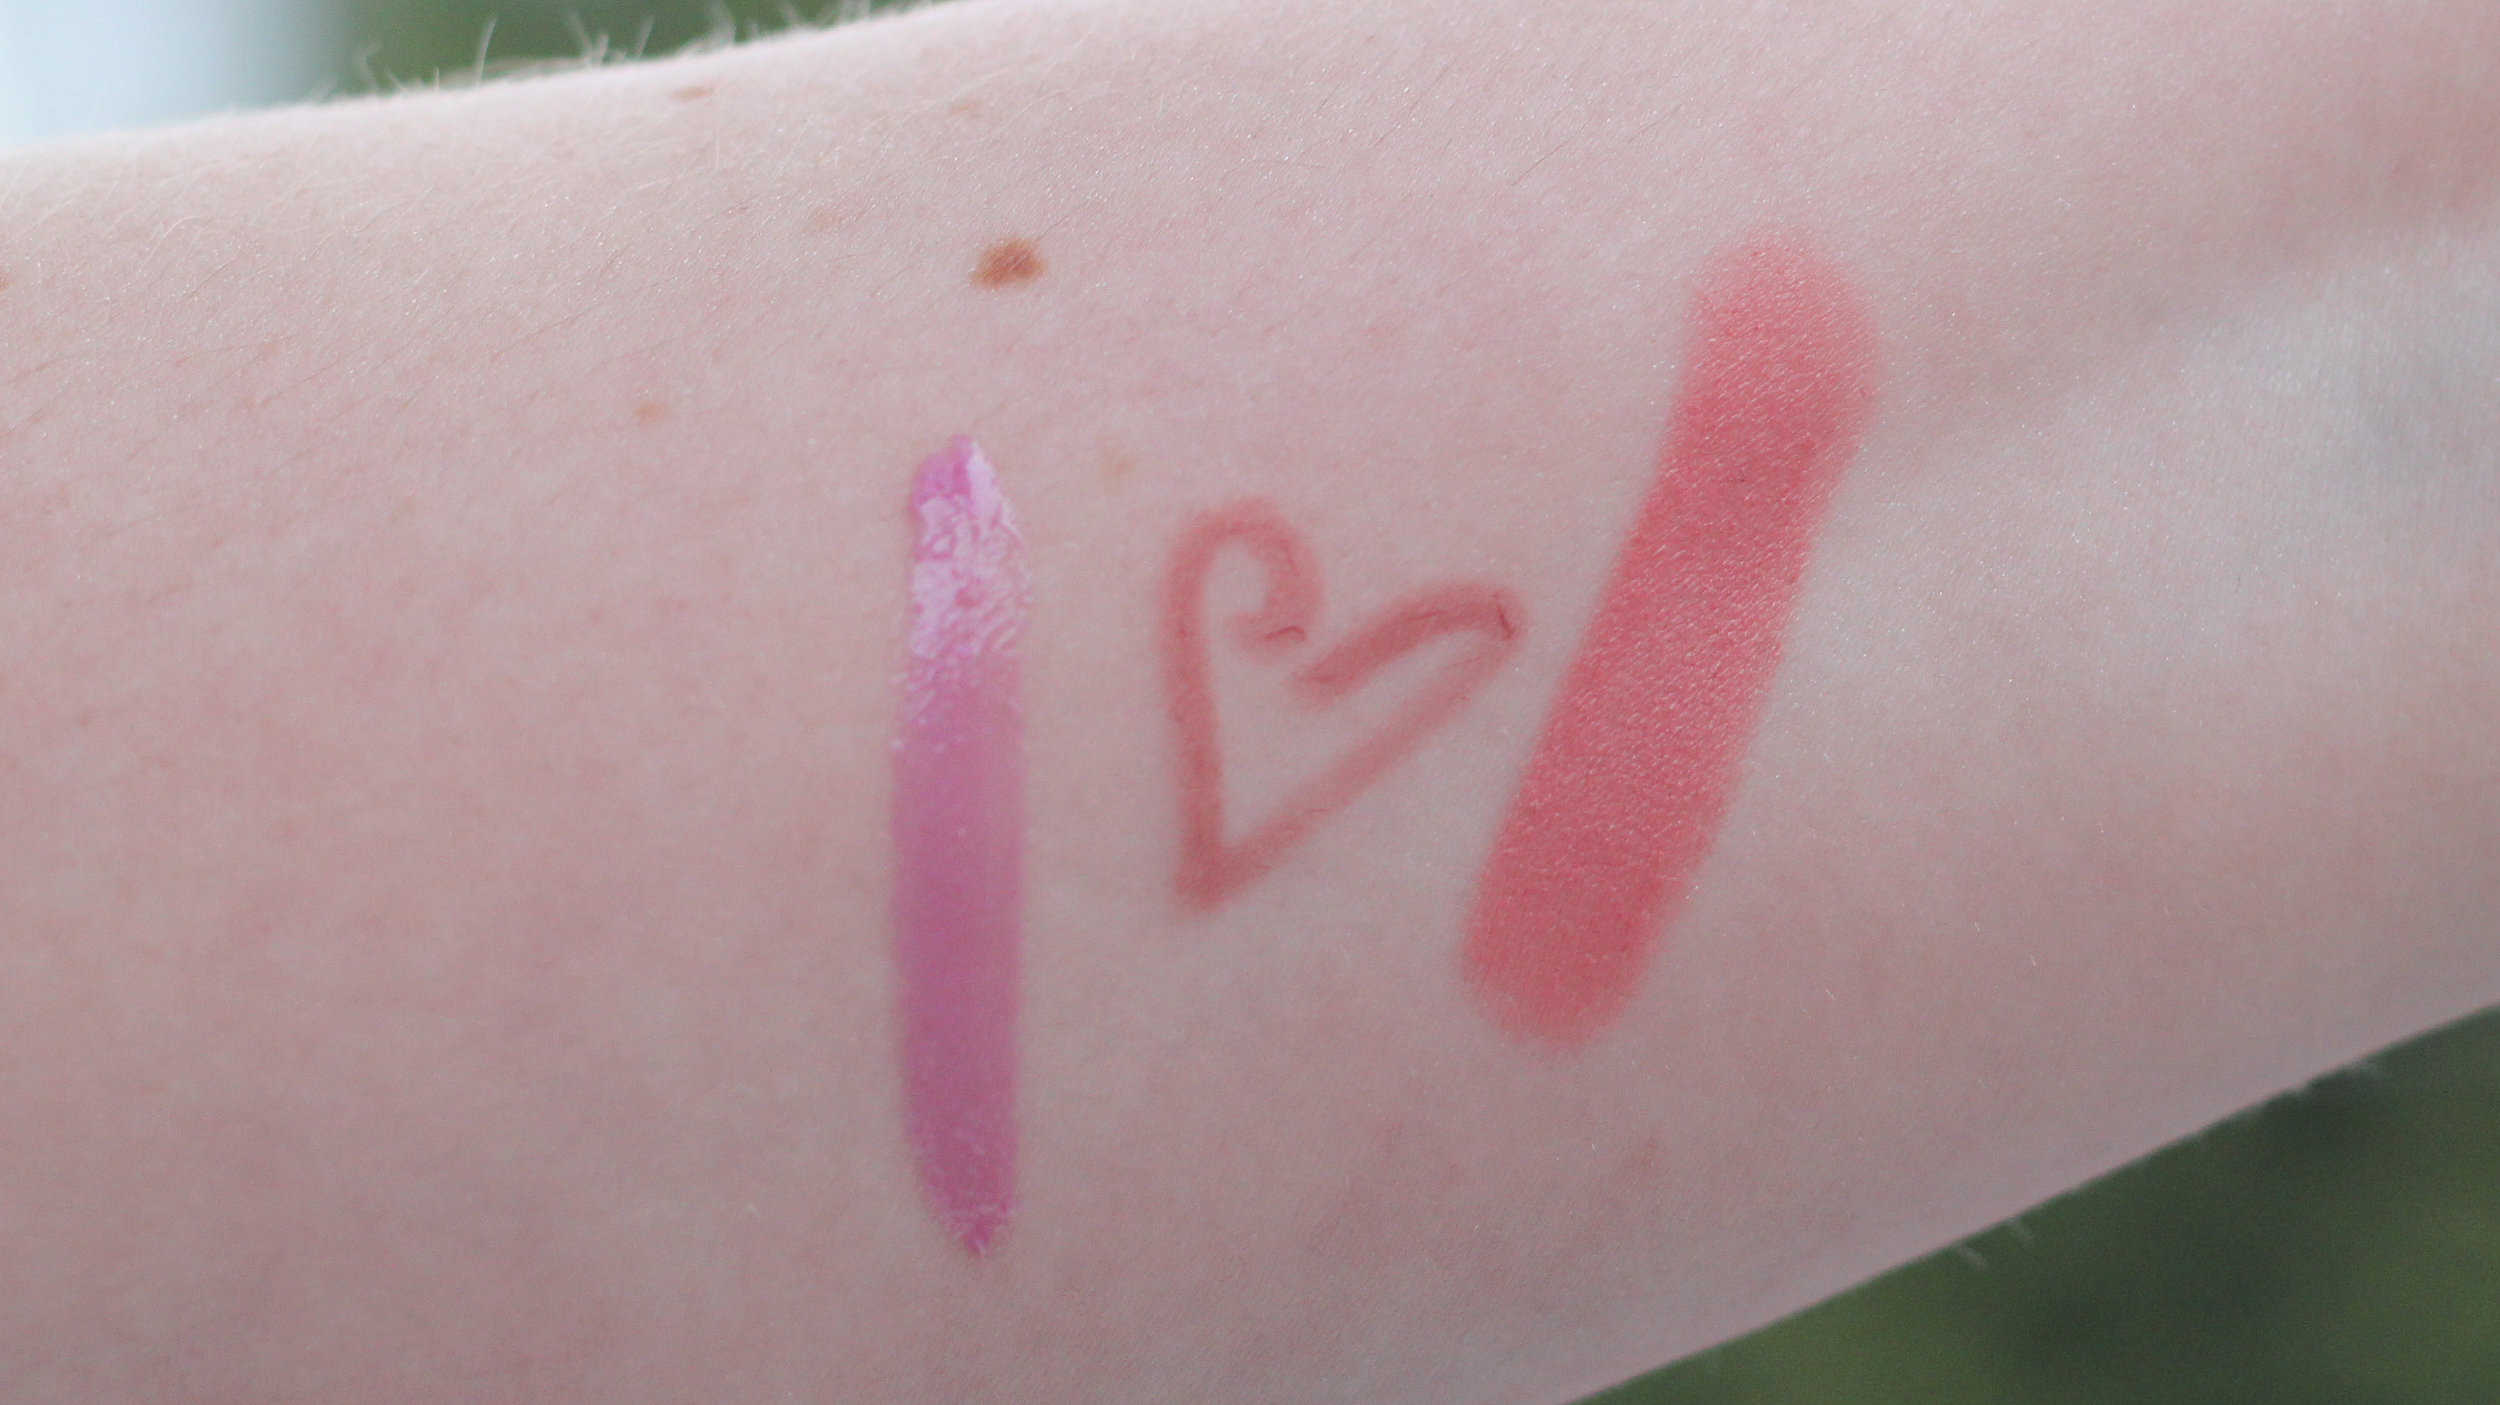 Left to right: Pink Steam, (Prim)rose, and Valentine.